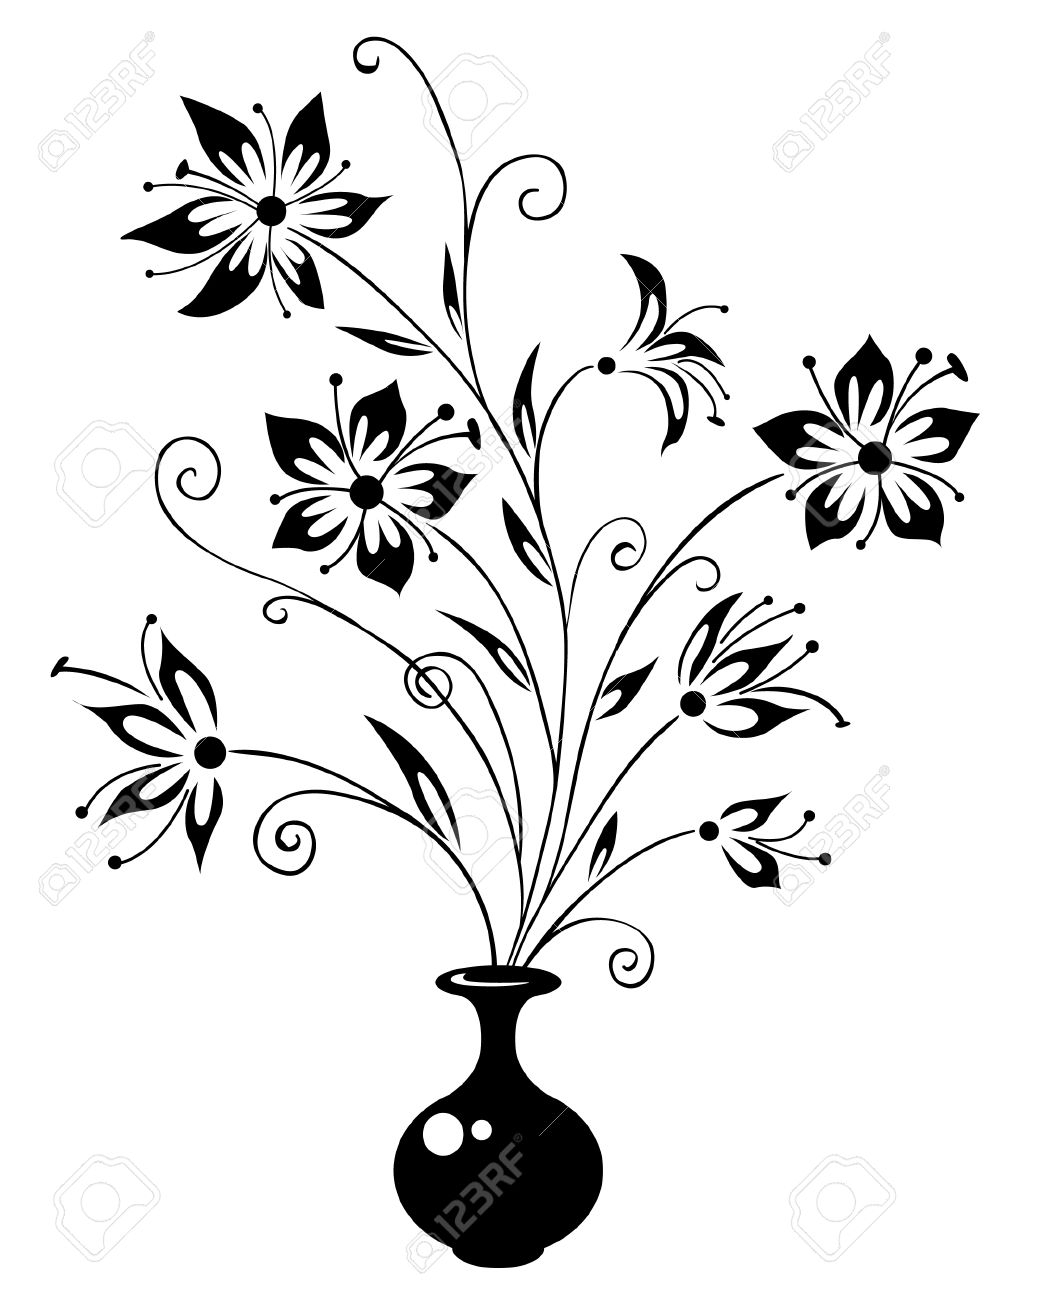 1040x1300 Flower Vase Photos And Simple Flowers Drawings And Colors Vase